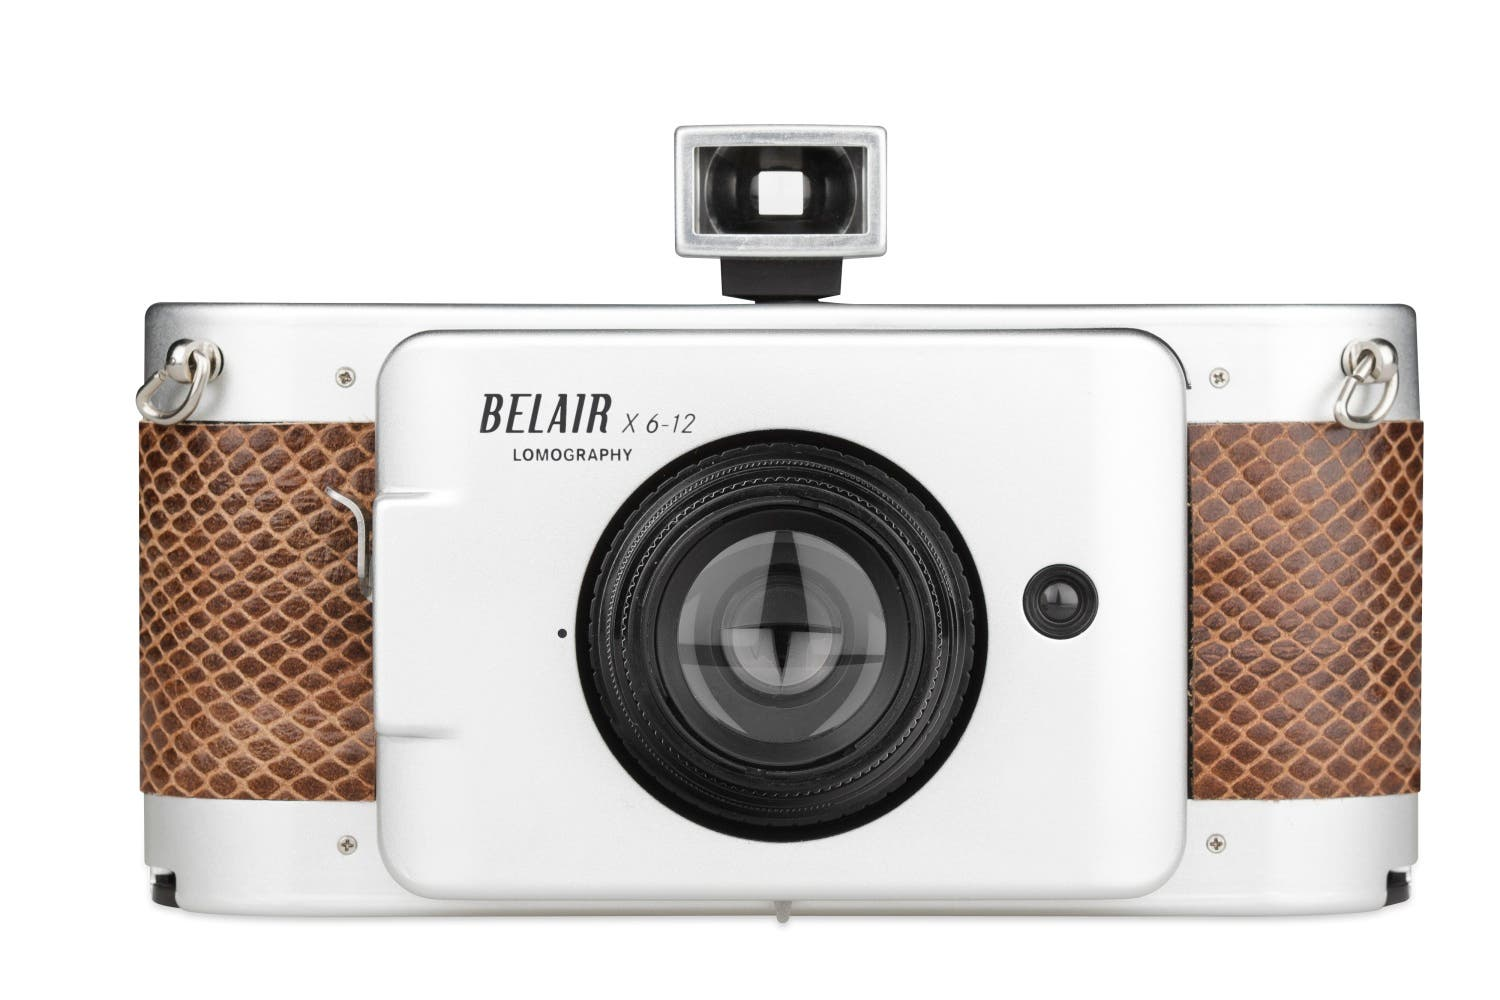 Lomography Announces 'Belair X 6-12' Panoramic Medium Format Camera with Some Interesting Lenses